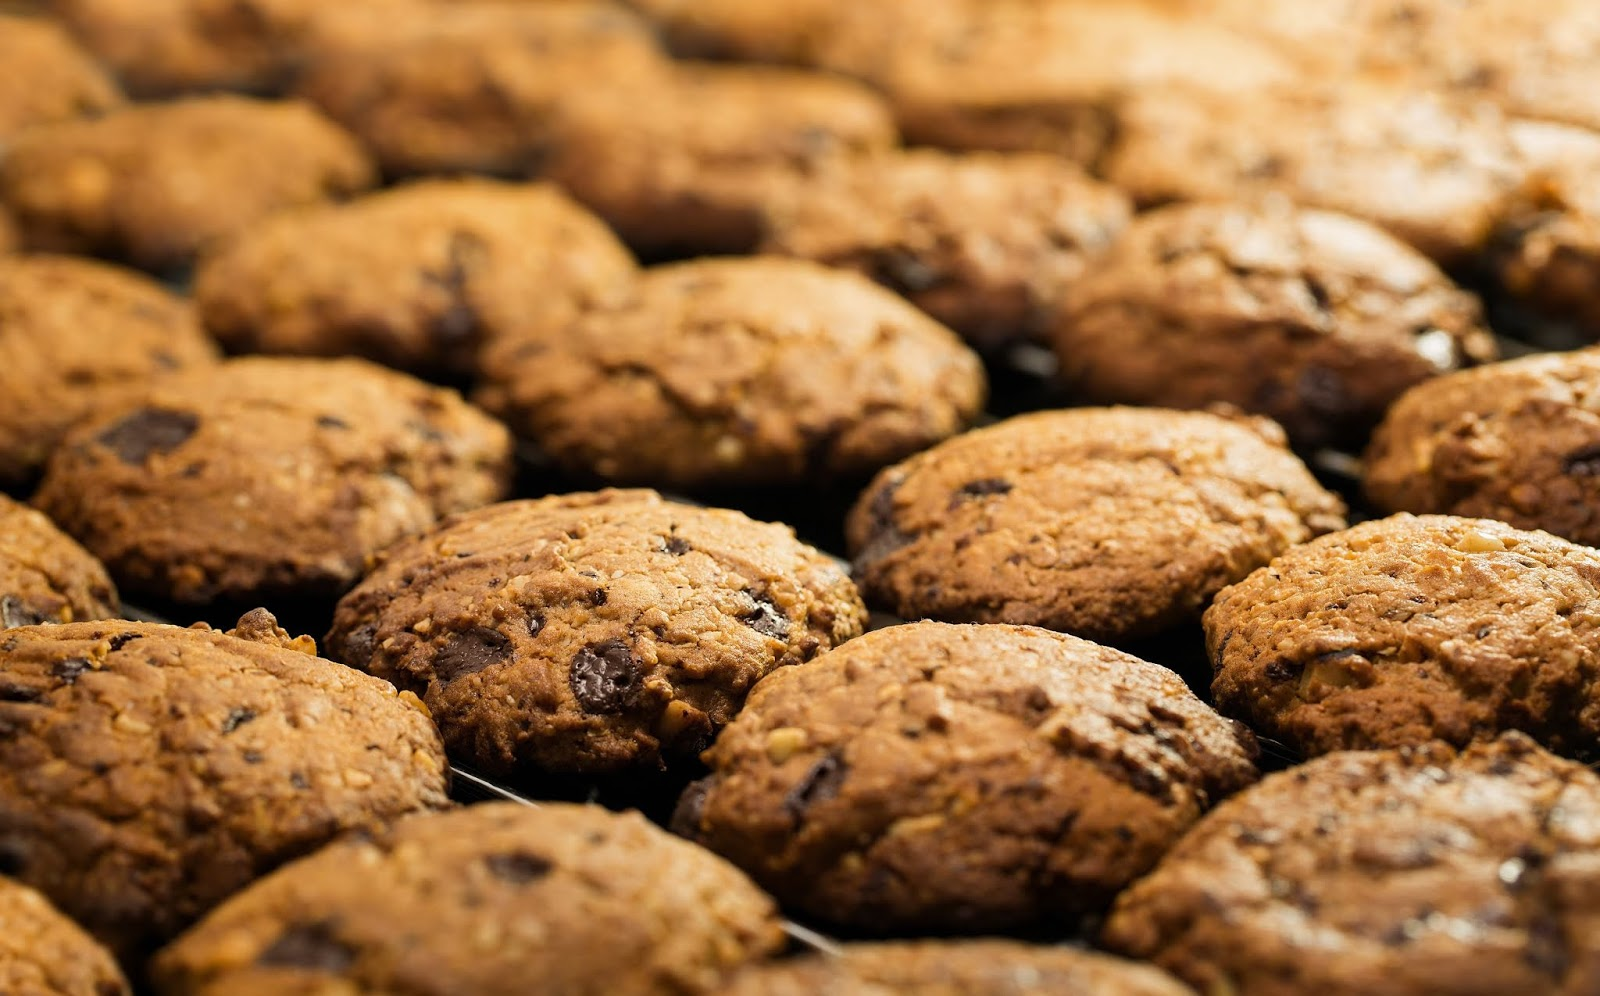 Student From California Baked grandfather's Ashes Into Cookies, Served It To Friends